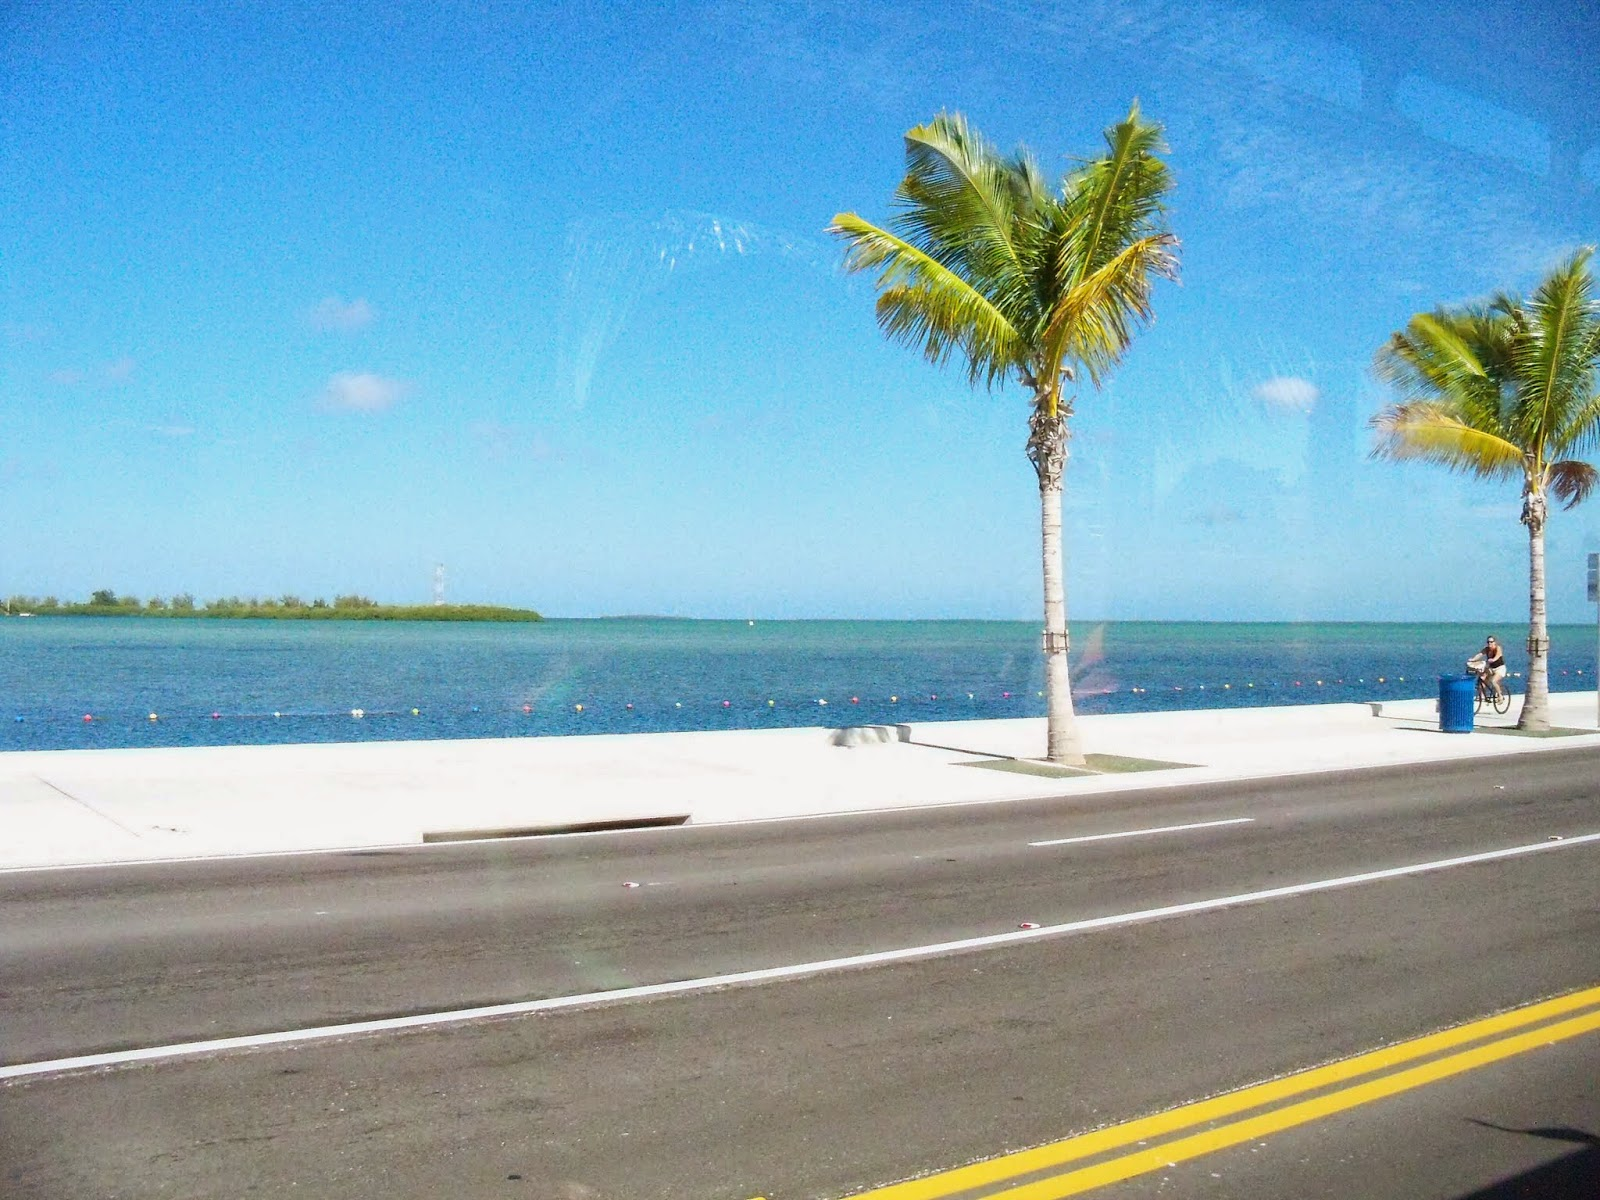 Key West Vacation - 116_5771.JPG